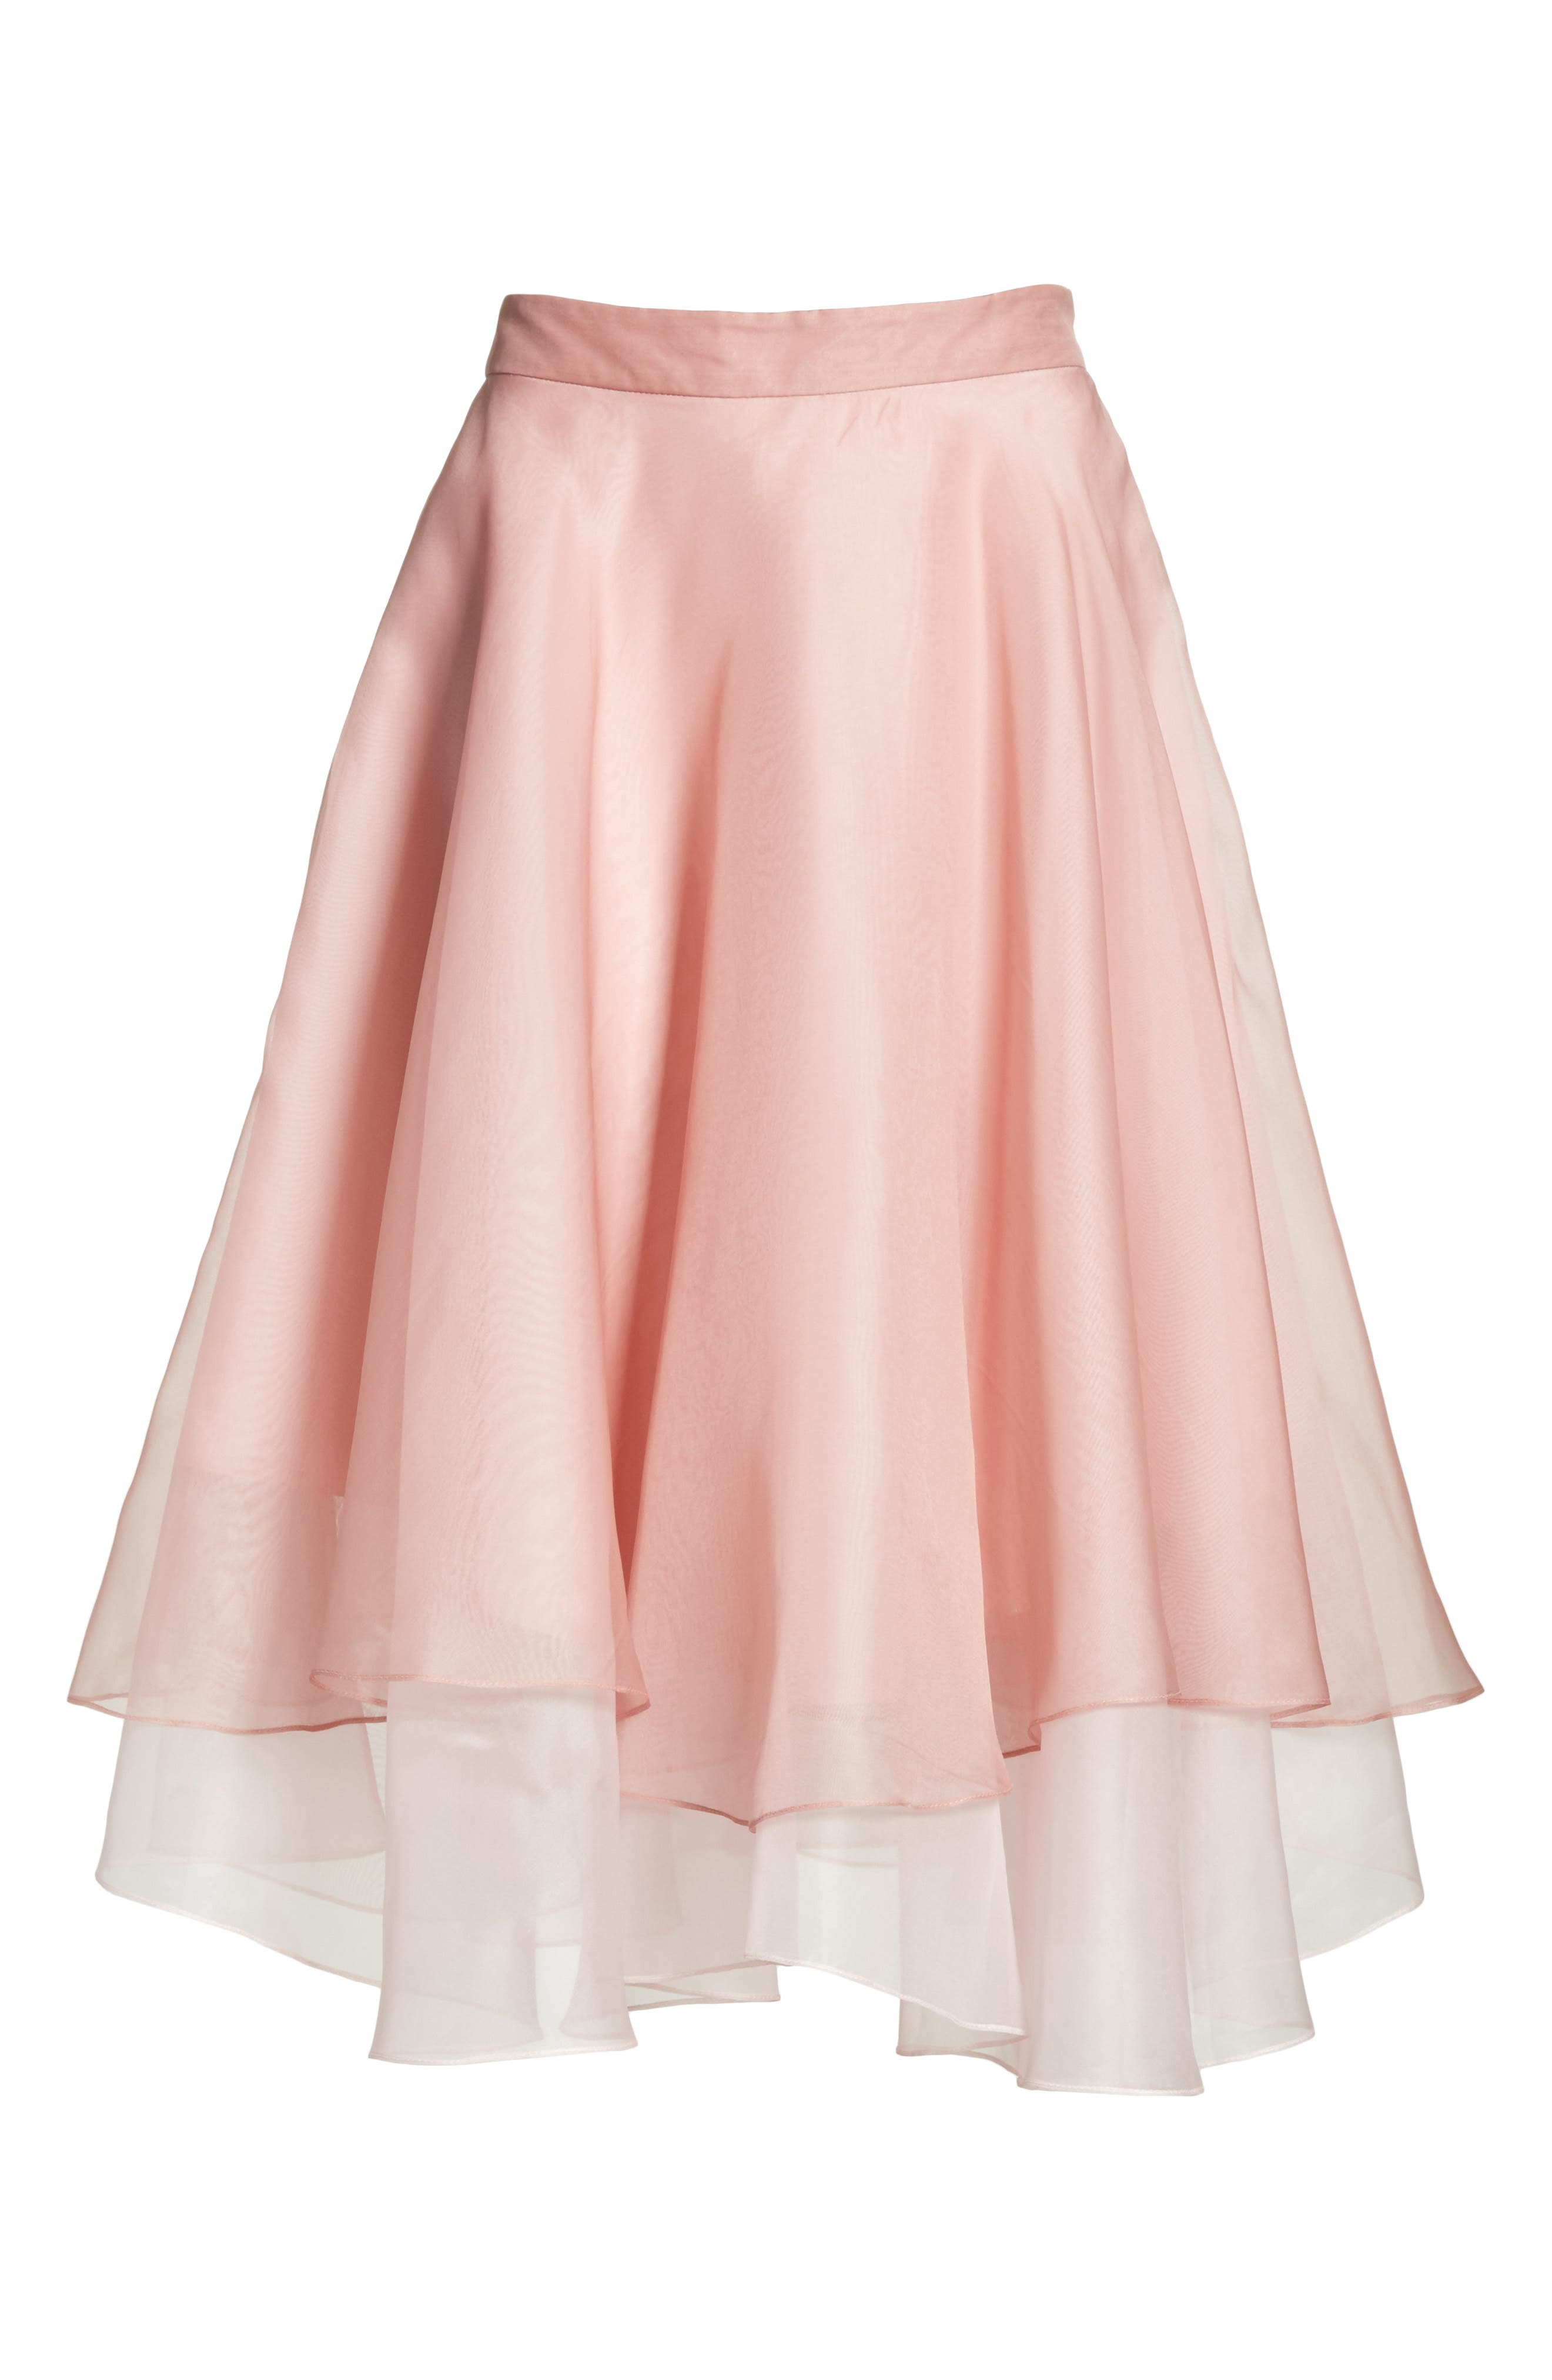 Layered Organza A-Line Skirt,                             Alternate thumbnail 6, color,                             Nude/ Petal